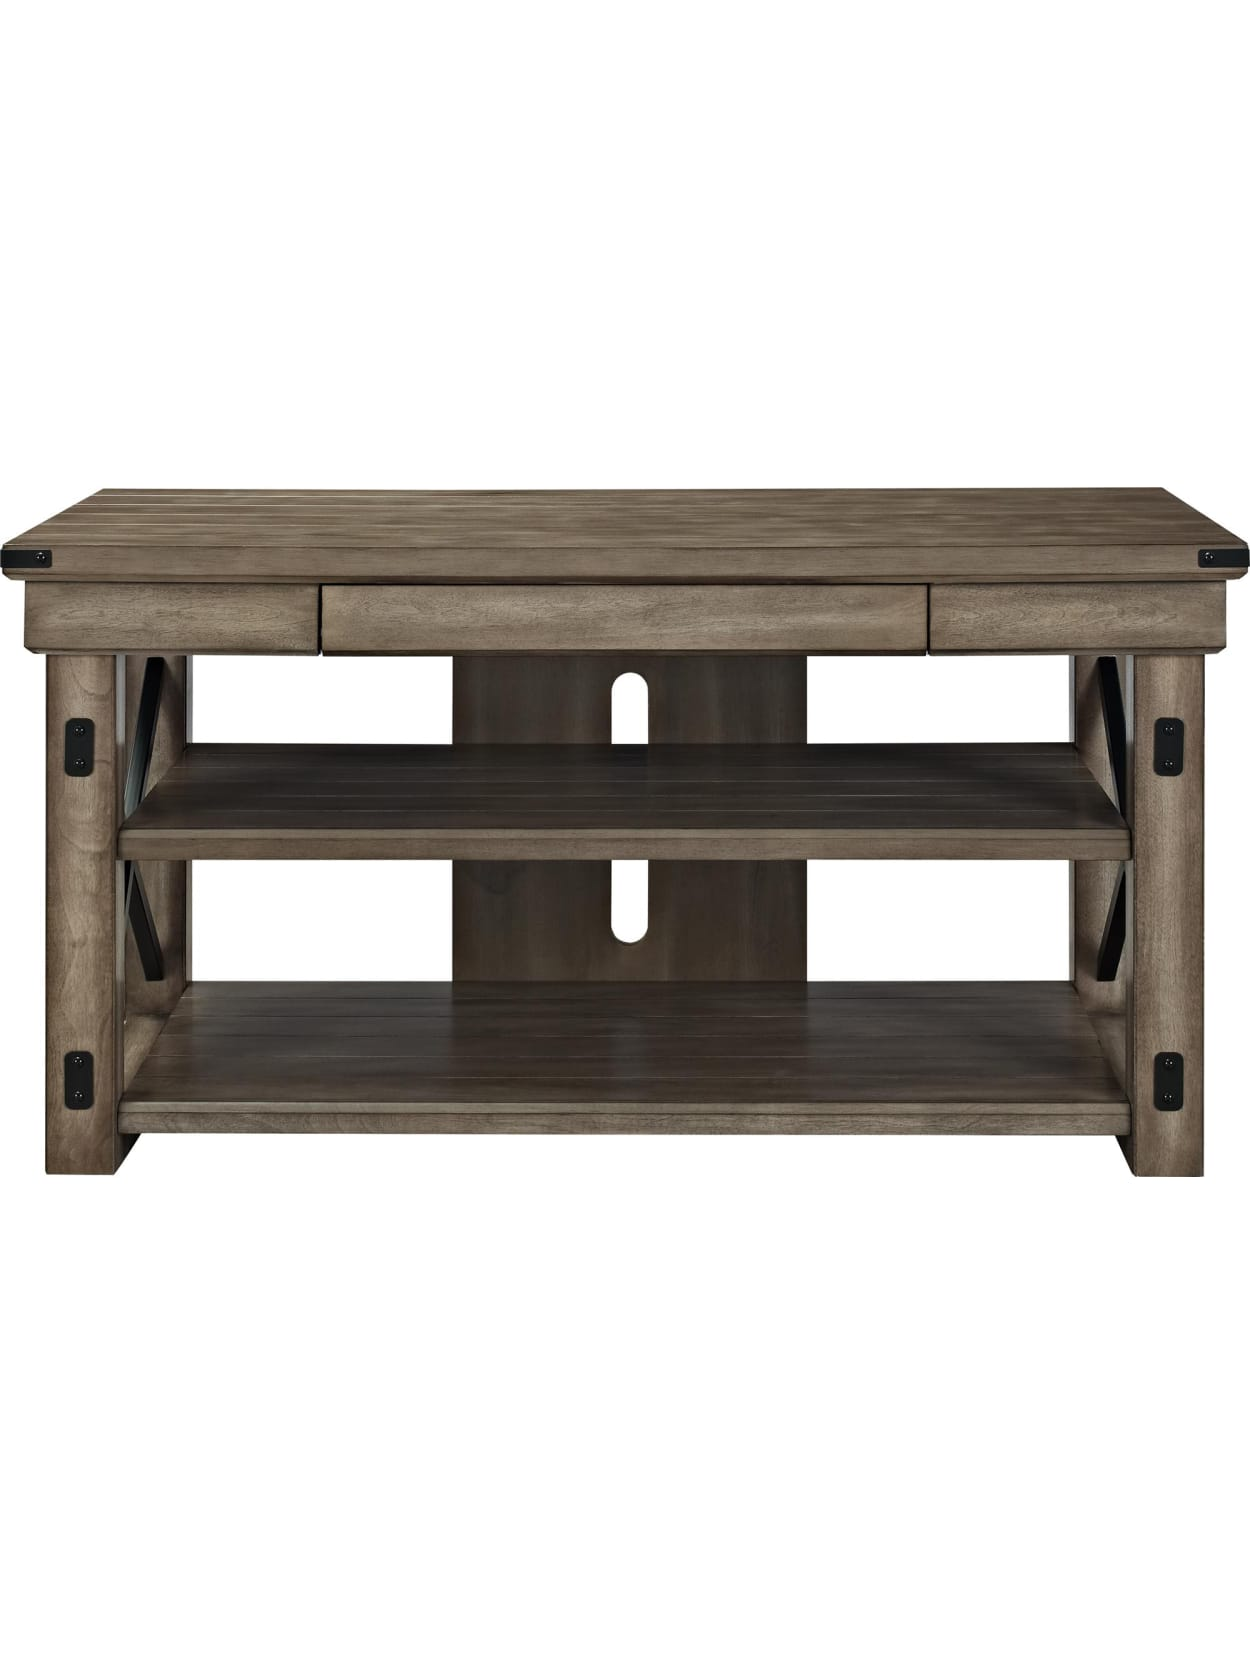 Ameriwood Home Wildwood Tv Stand For Flat Screen Tvs Up To 50 Blackbrown Office Depot